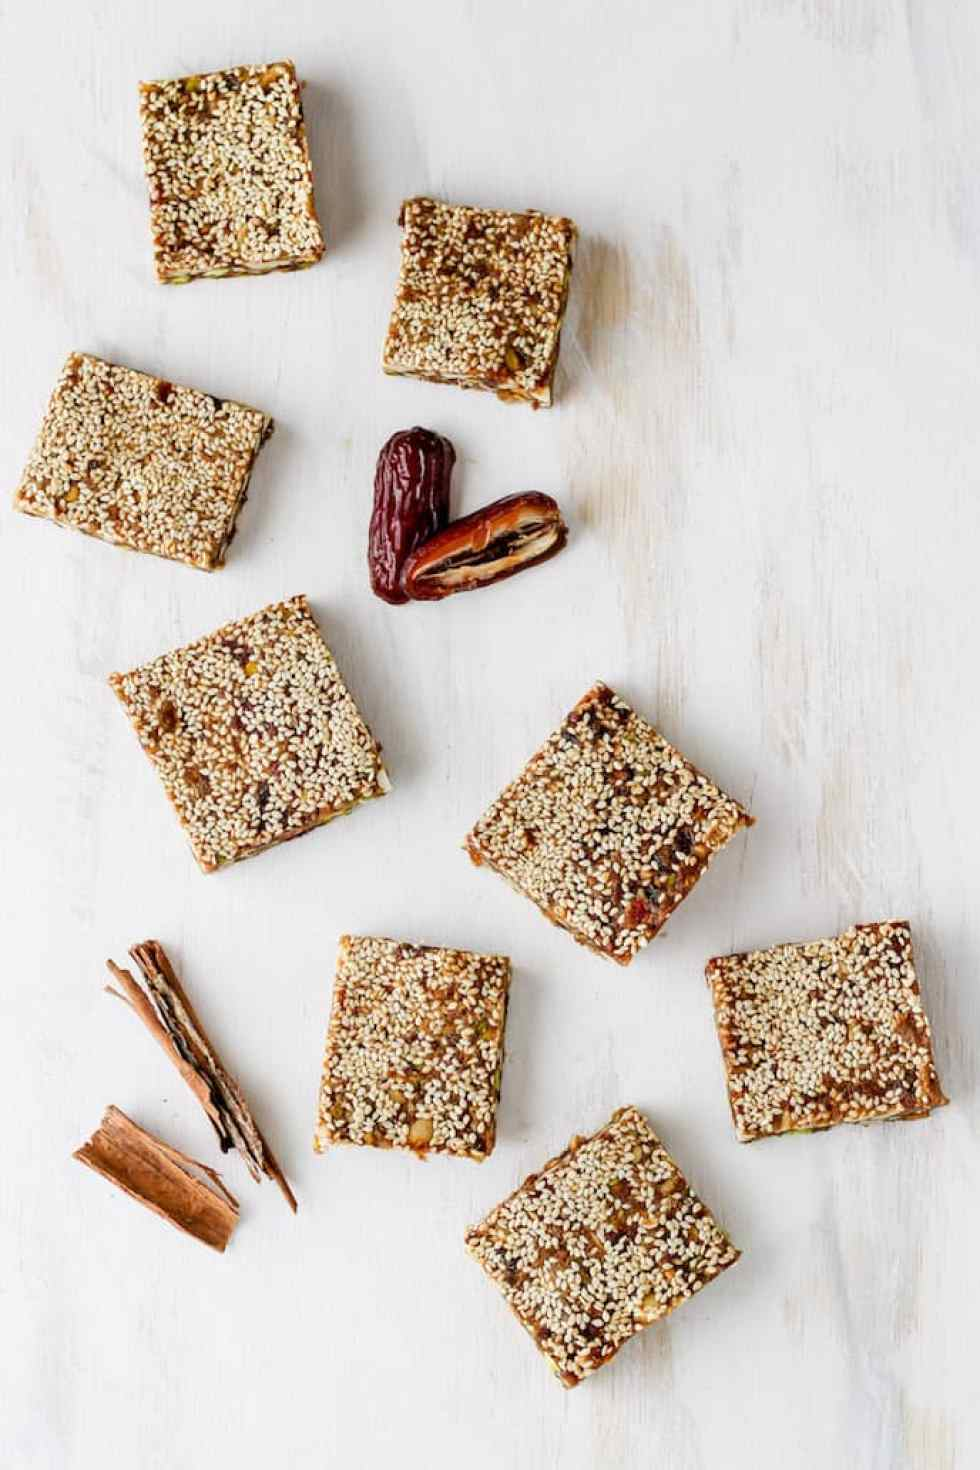 Overhead shot of sesame date bars arranged on a white backdrop with cinnamon sticks and date.